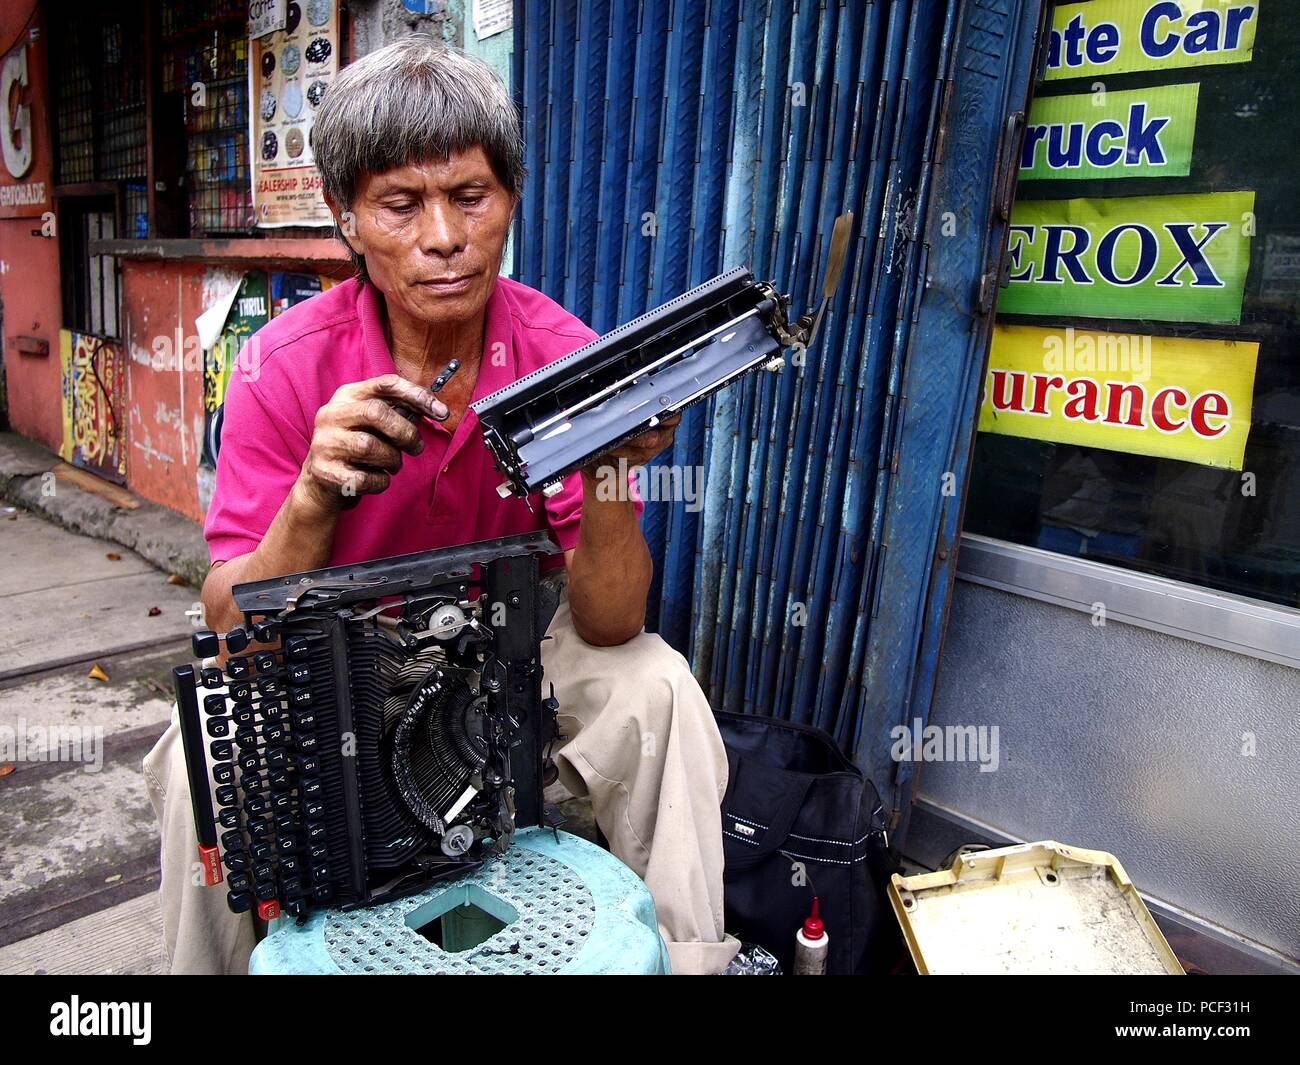 ANTIPOLO CITY, PHILIPPINES - JULY 30, 2018: A repairman fixes an old manual typewriter at a sidewalk along a busy street. Stock Photo